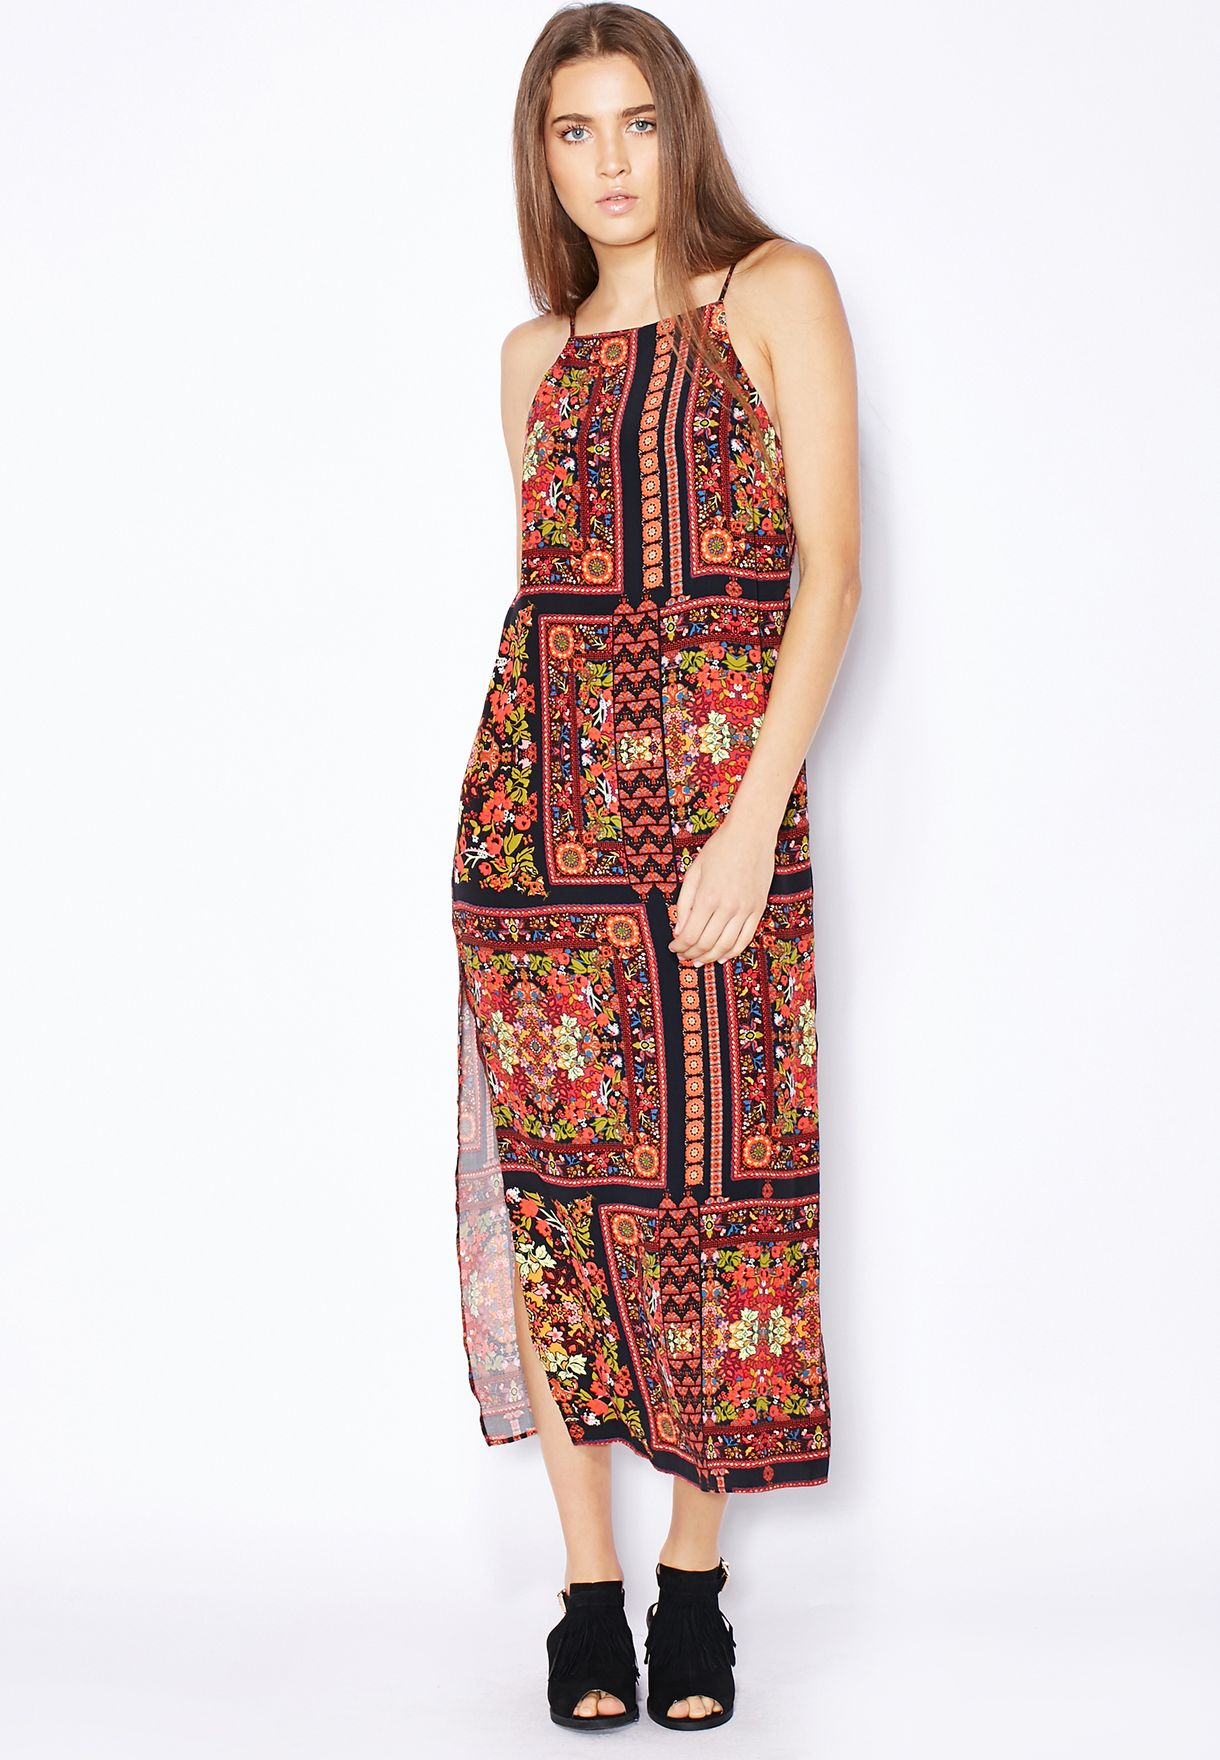 3b033ef3e1 Shop Topshop prints Scarf Print Maxi Dress for Women in UAE ...